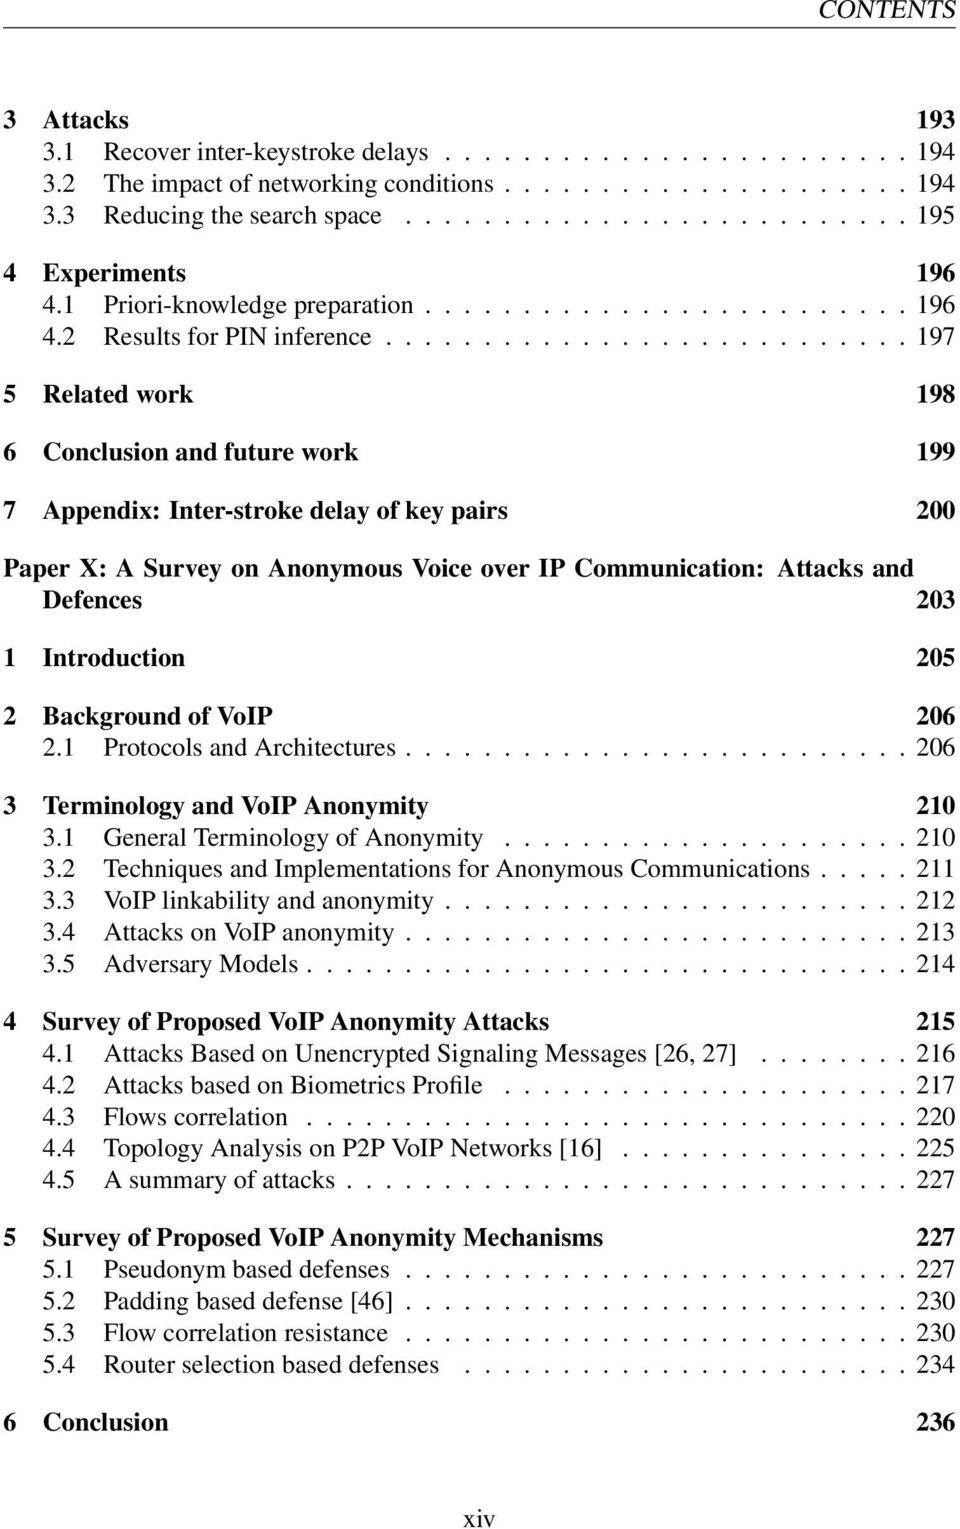 .......................... 197 5 Related work 198 6 Conclusion and future work 199 7 Appendix: Inter-stroke delay of key pairs 200 Paper X: A Survey on Anonymous Voice over IP Communication: Attacks